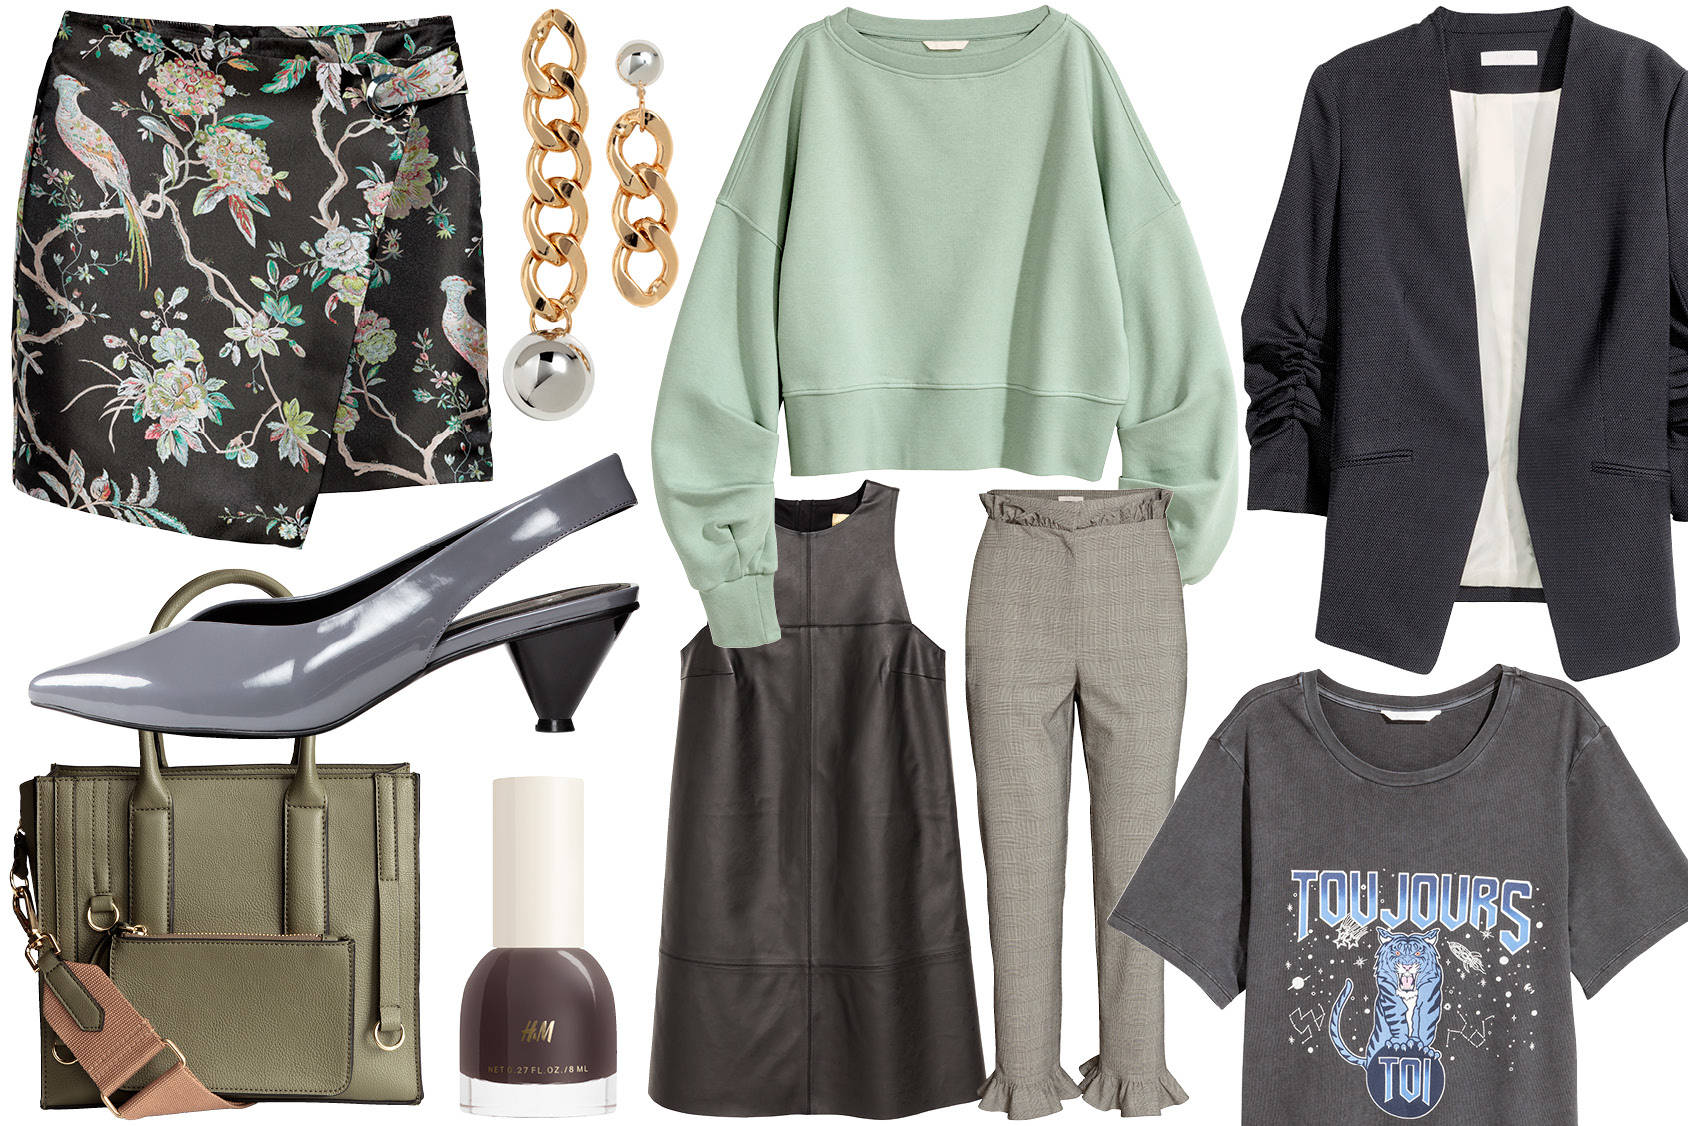 This week's fashion finds